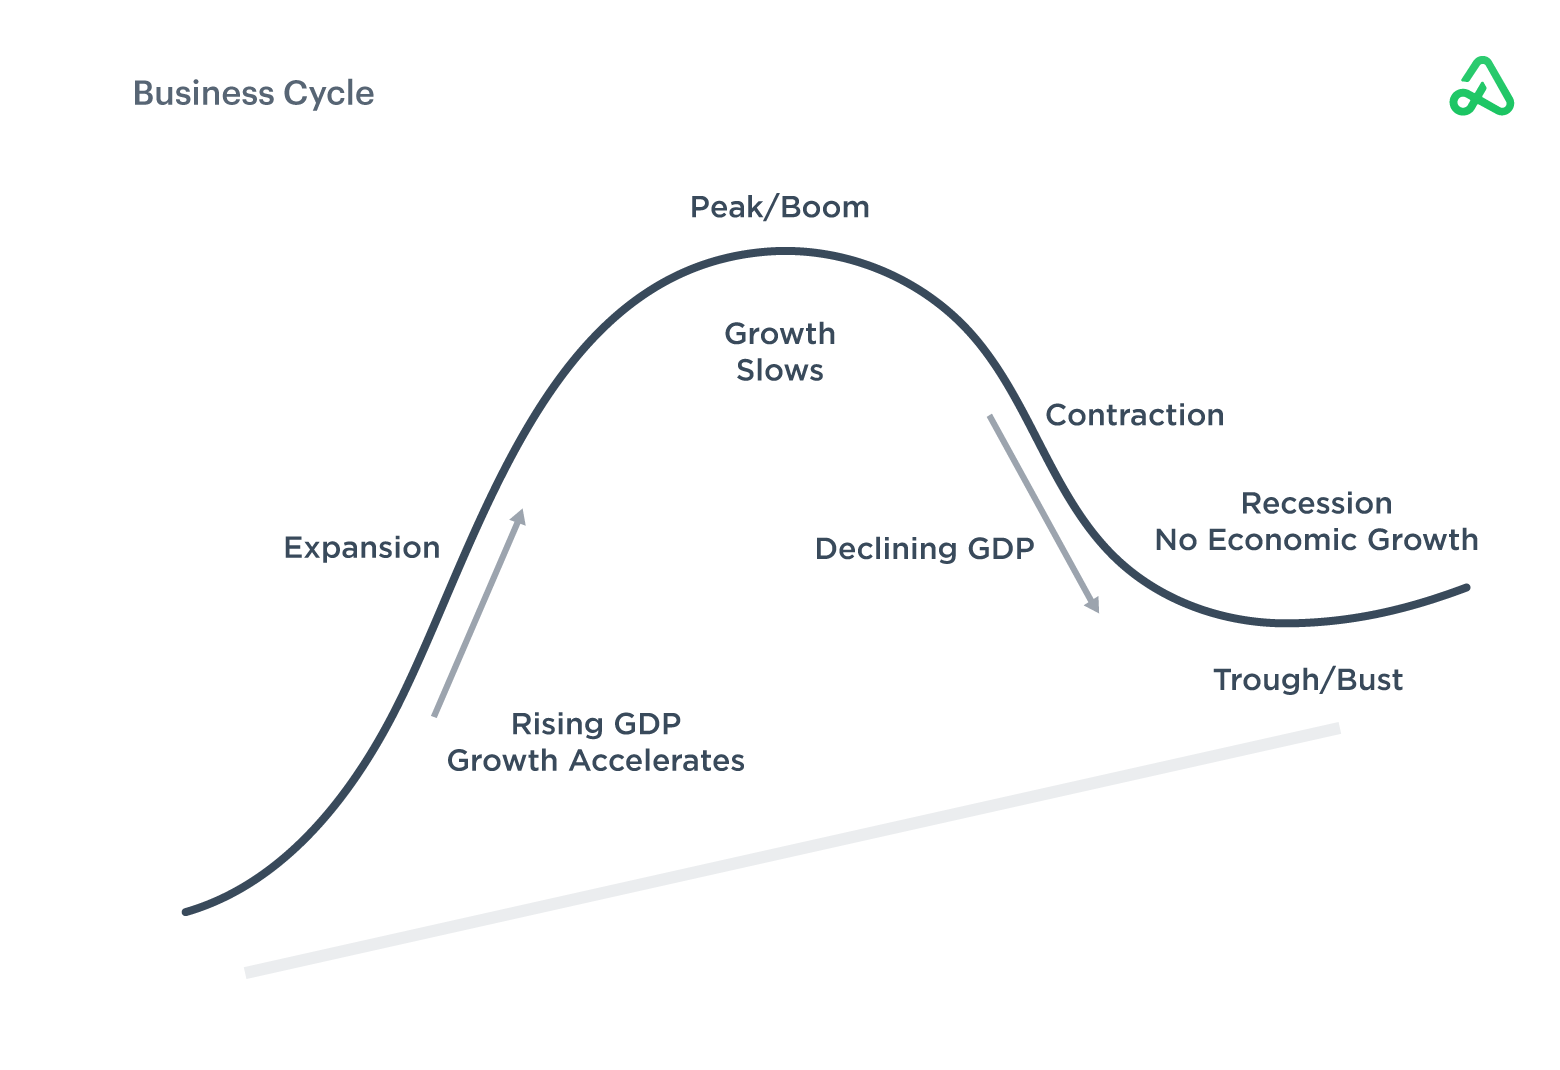 Image of business cycle with various arts of the economic cycle displayed